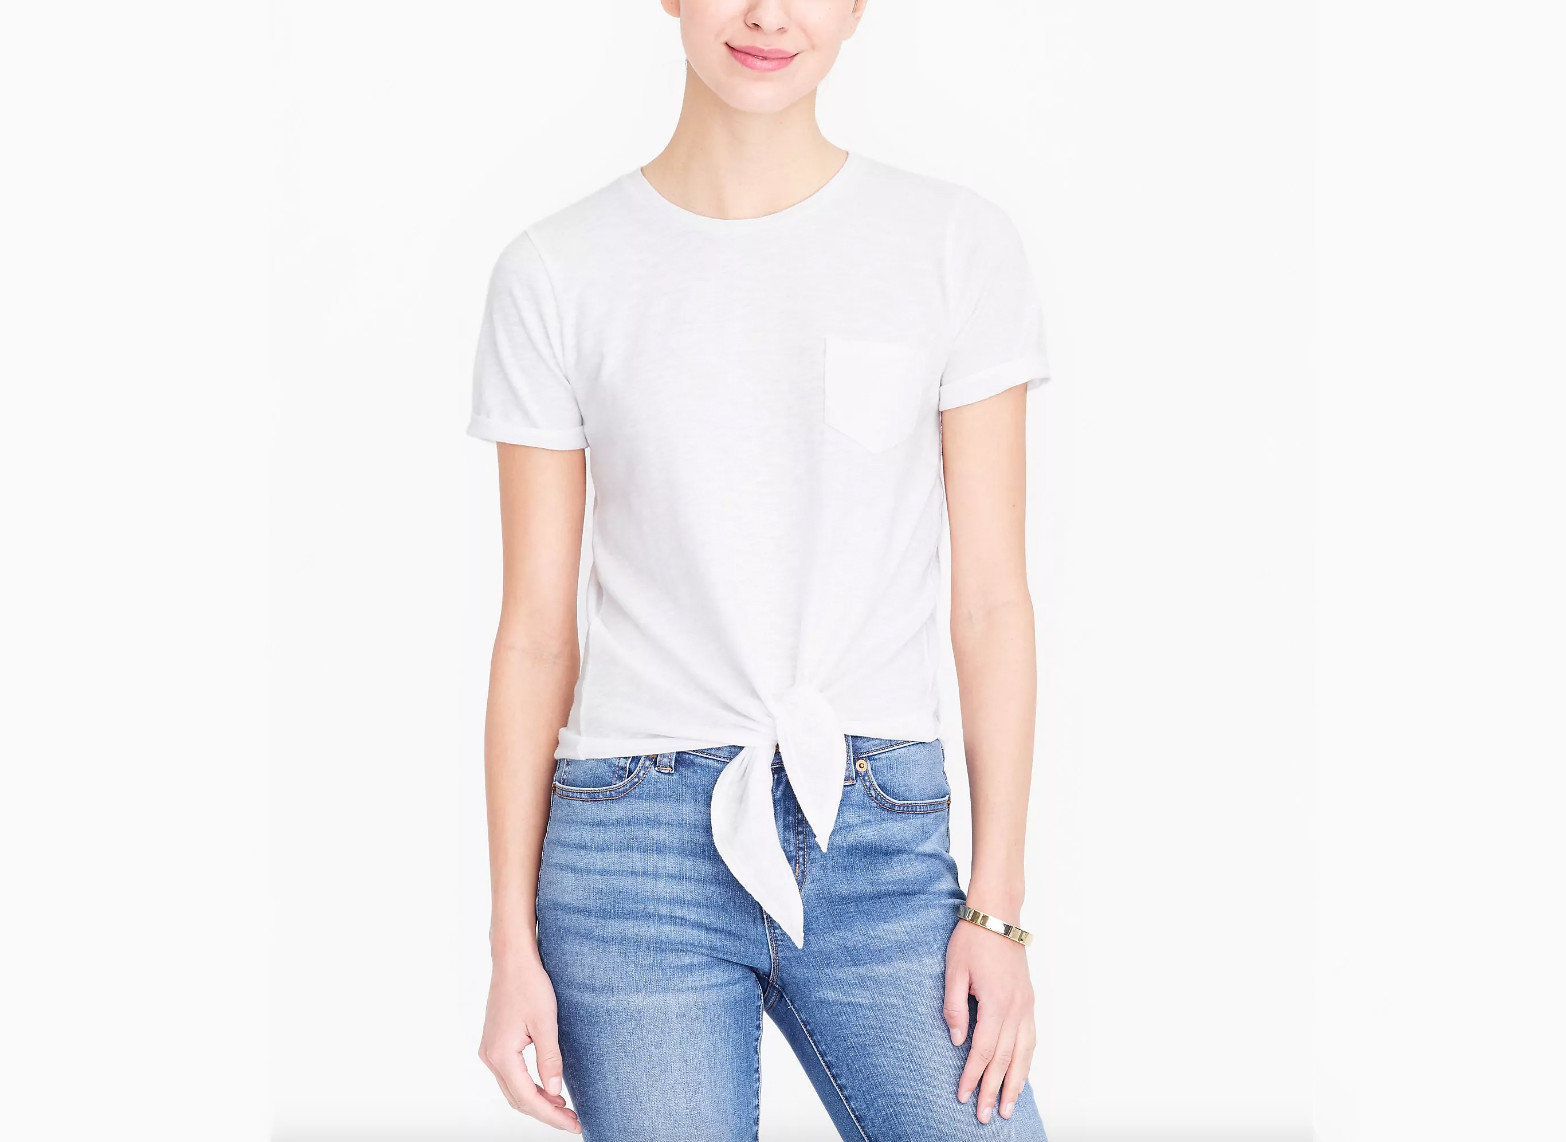 Trip Ideas person clothing white standing sleeve t shirt shoulder neck posing jeans trouser muscle pocket joint denim waist